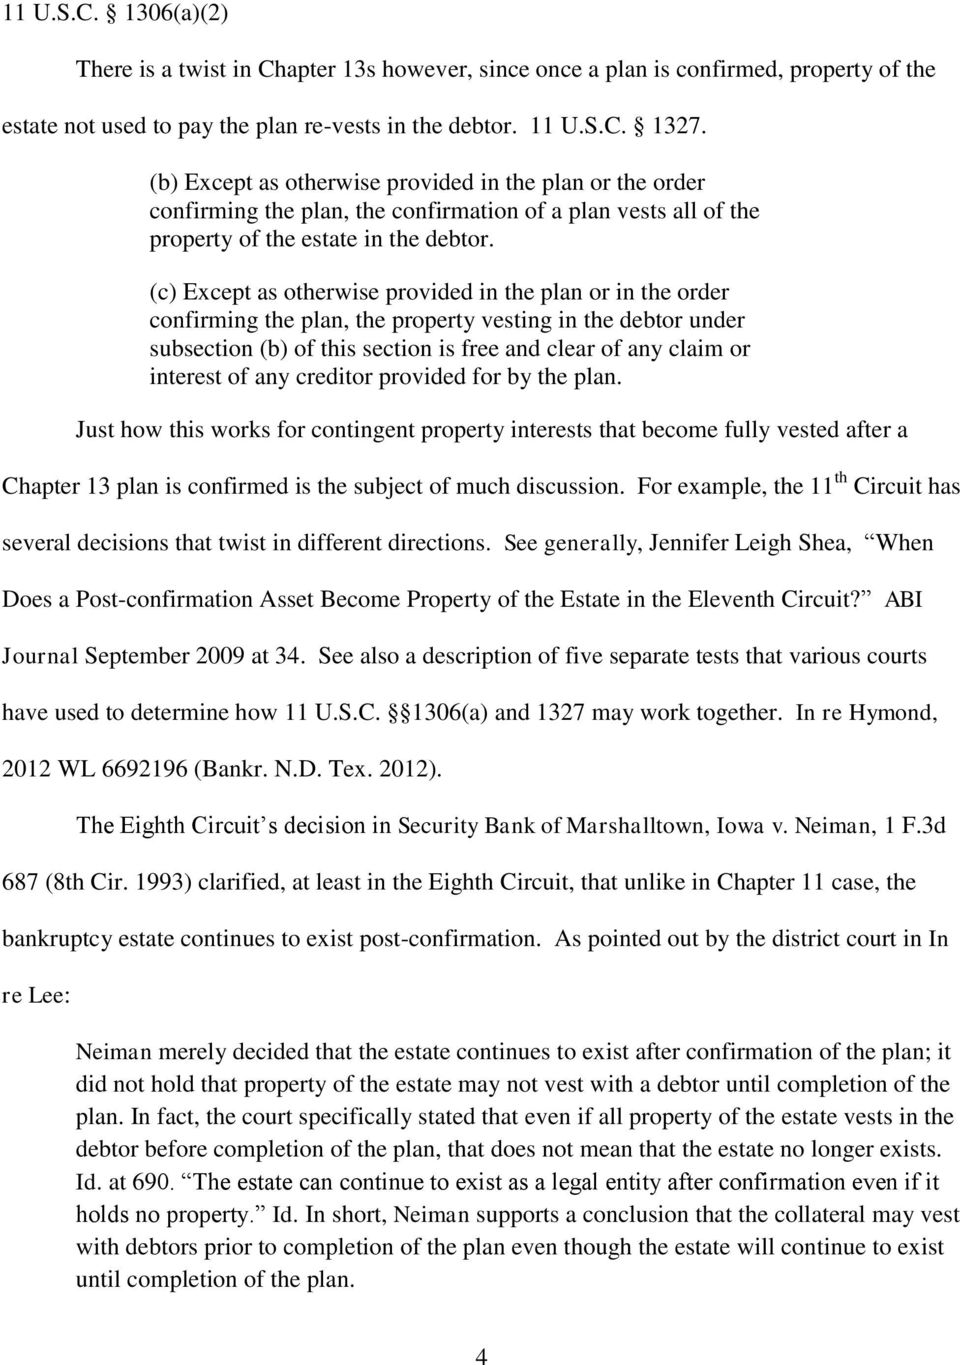 CONTINGENT PROPERTY INTERESTS IN BANKRUPTCY - PDF